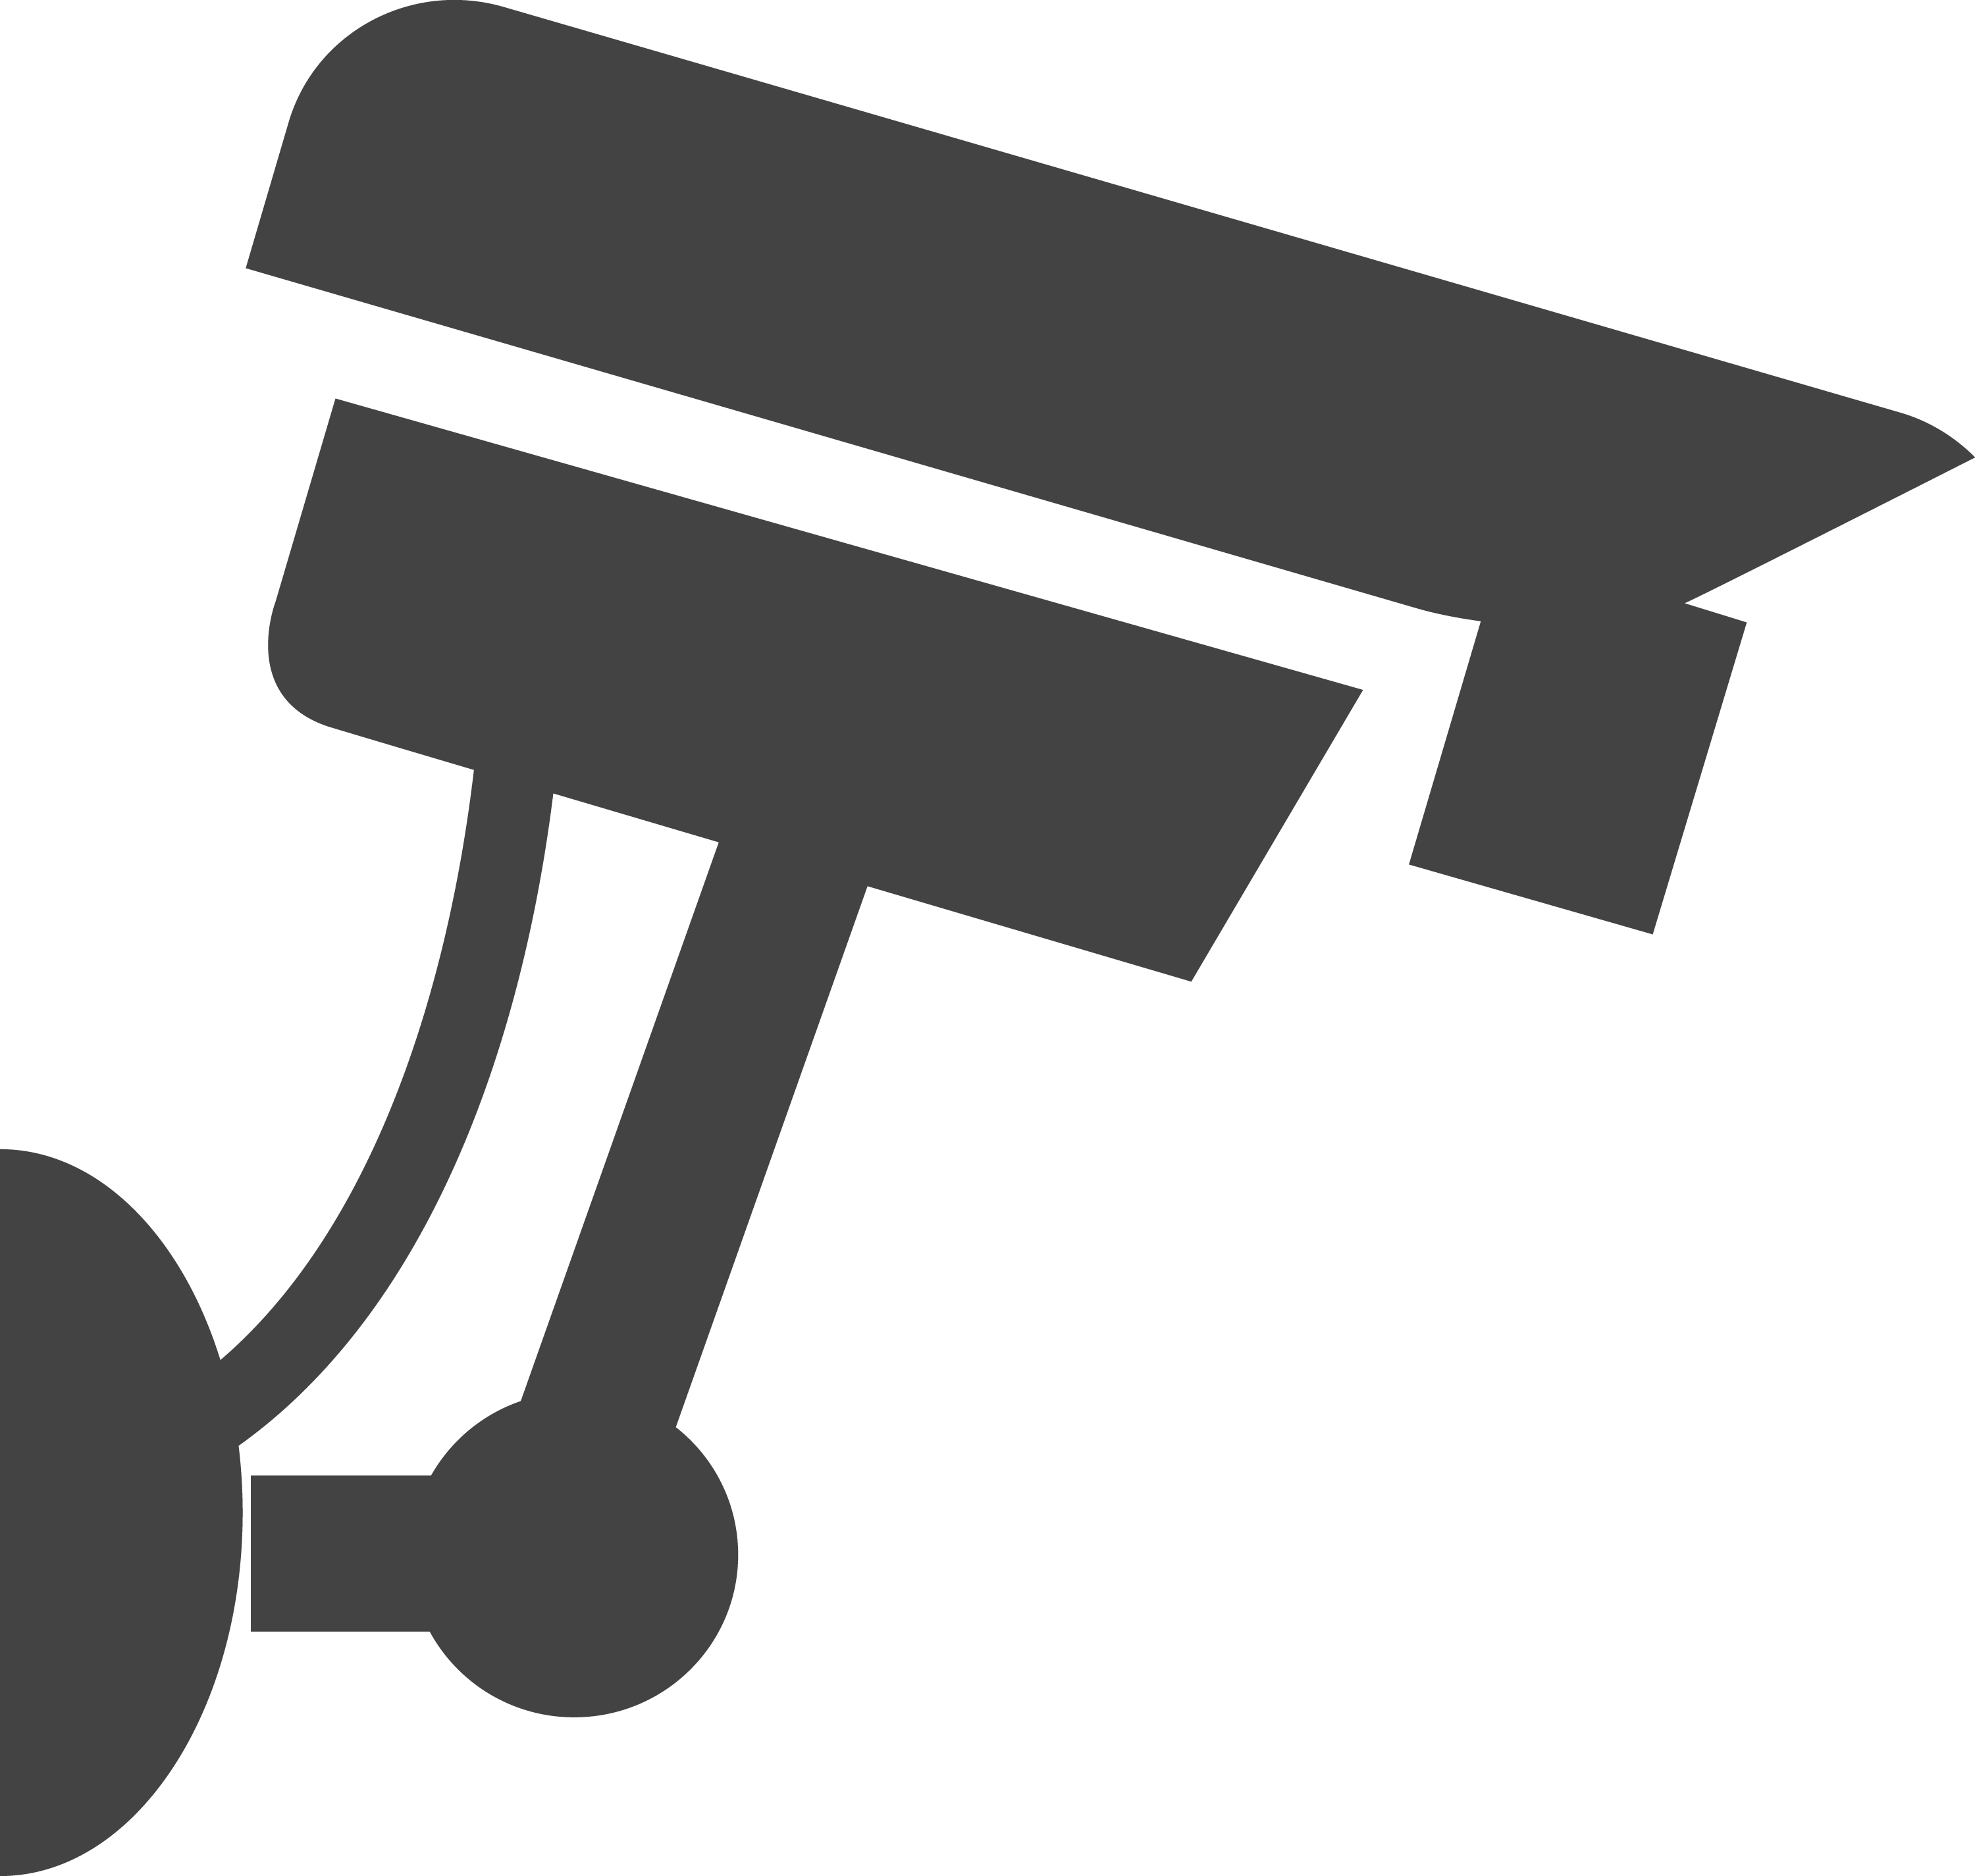 Security Camera Wallpaper Wallpapersafar-Security camera wallpaper wallpapersafari clipart-7